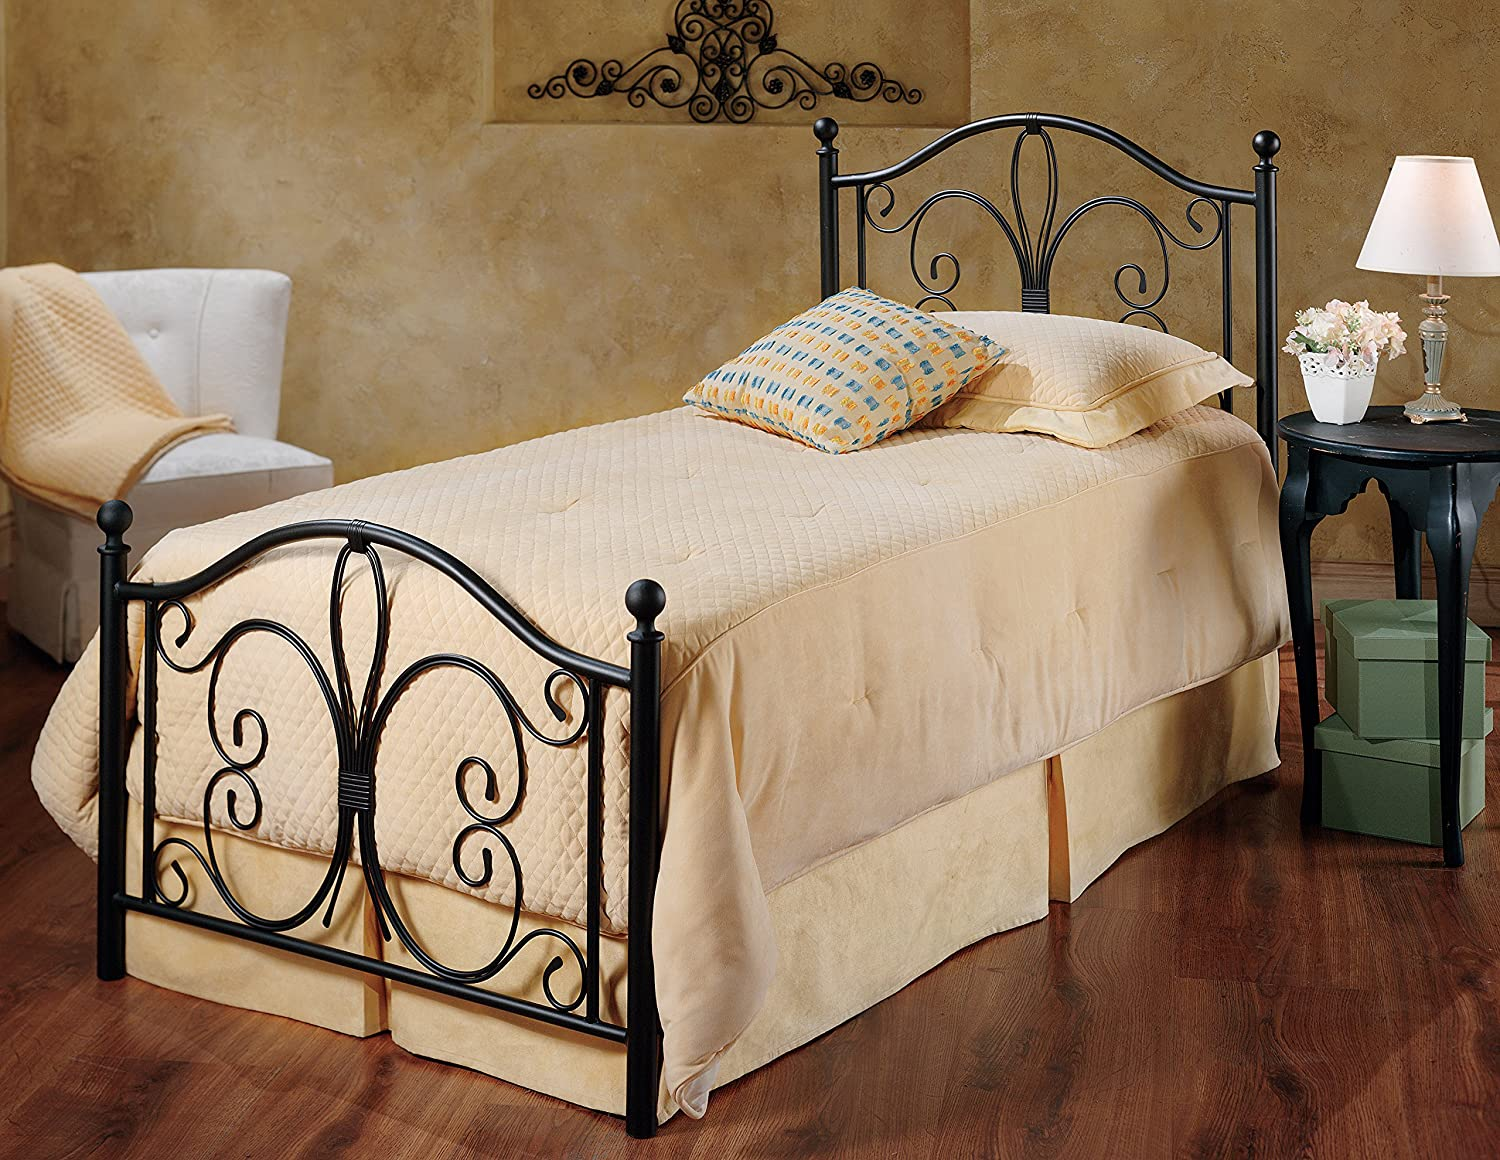 Amazon.com: Hillsdale Furniture 1014BFR Milwaukee Bed Set with Rails, Full,  Antique Brown: Kitchen & Dining - Amazon.com: Hillsdale Furniture 1014BFR Milwaukee Bed Set With